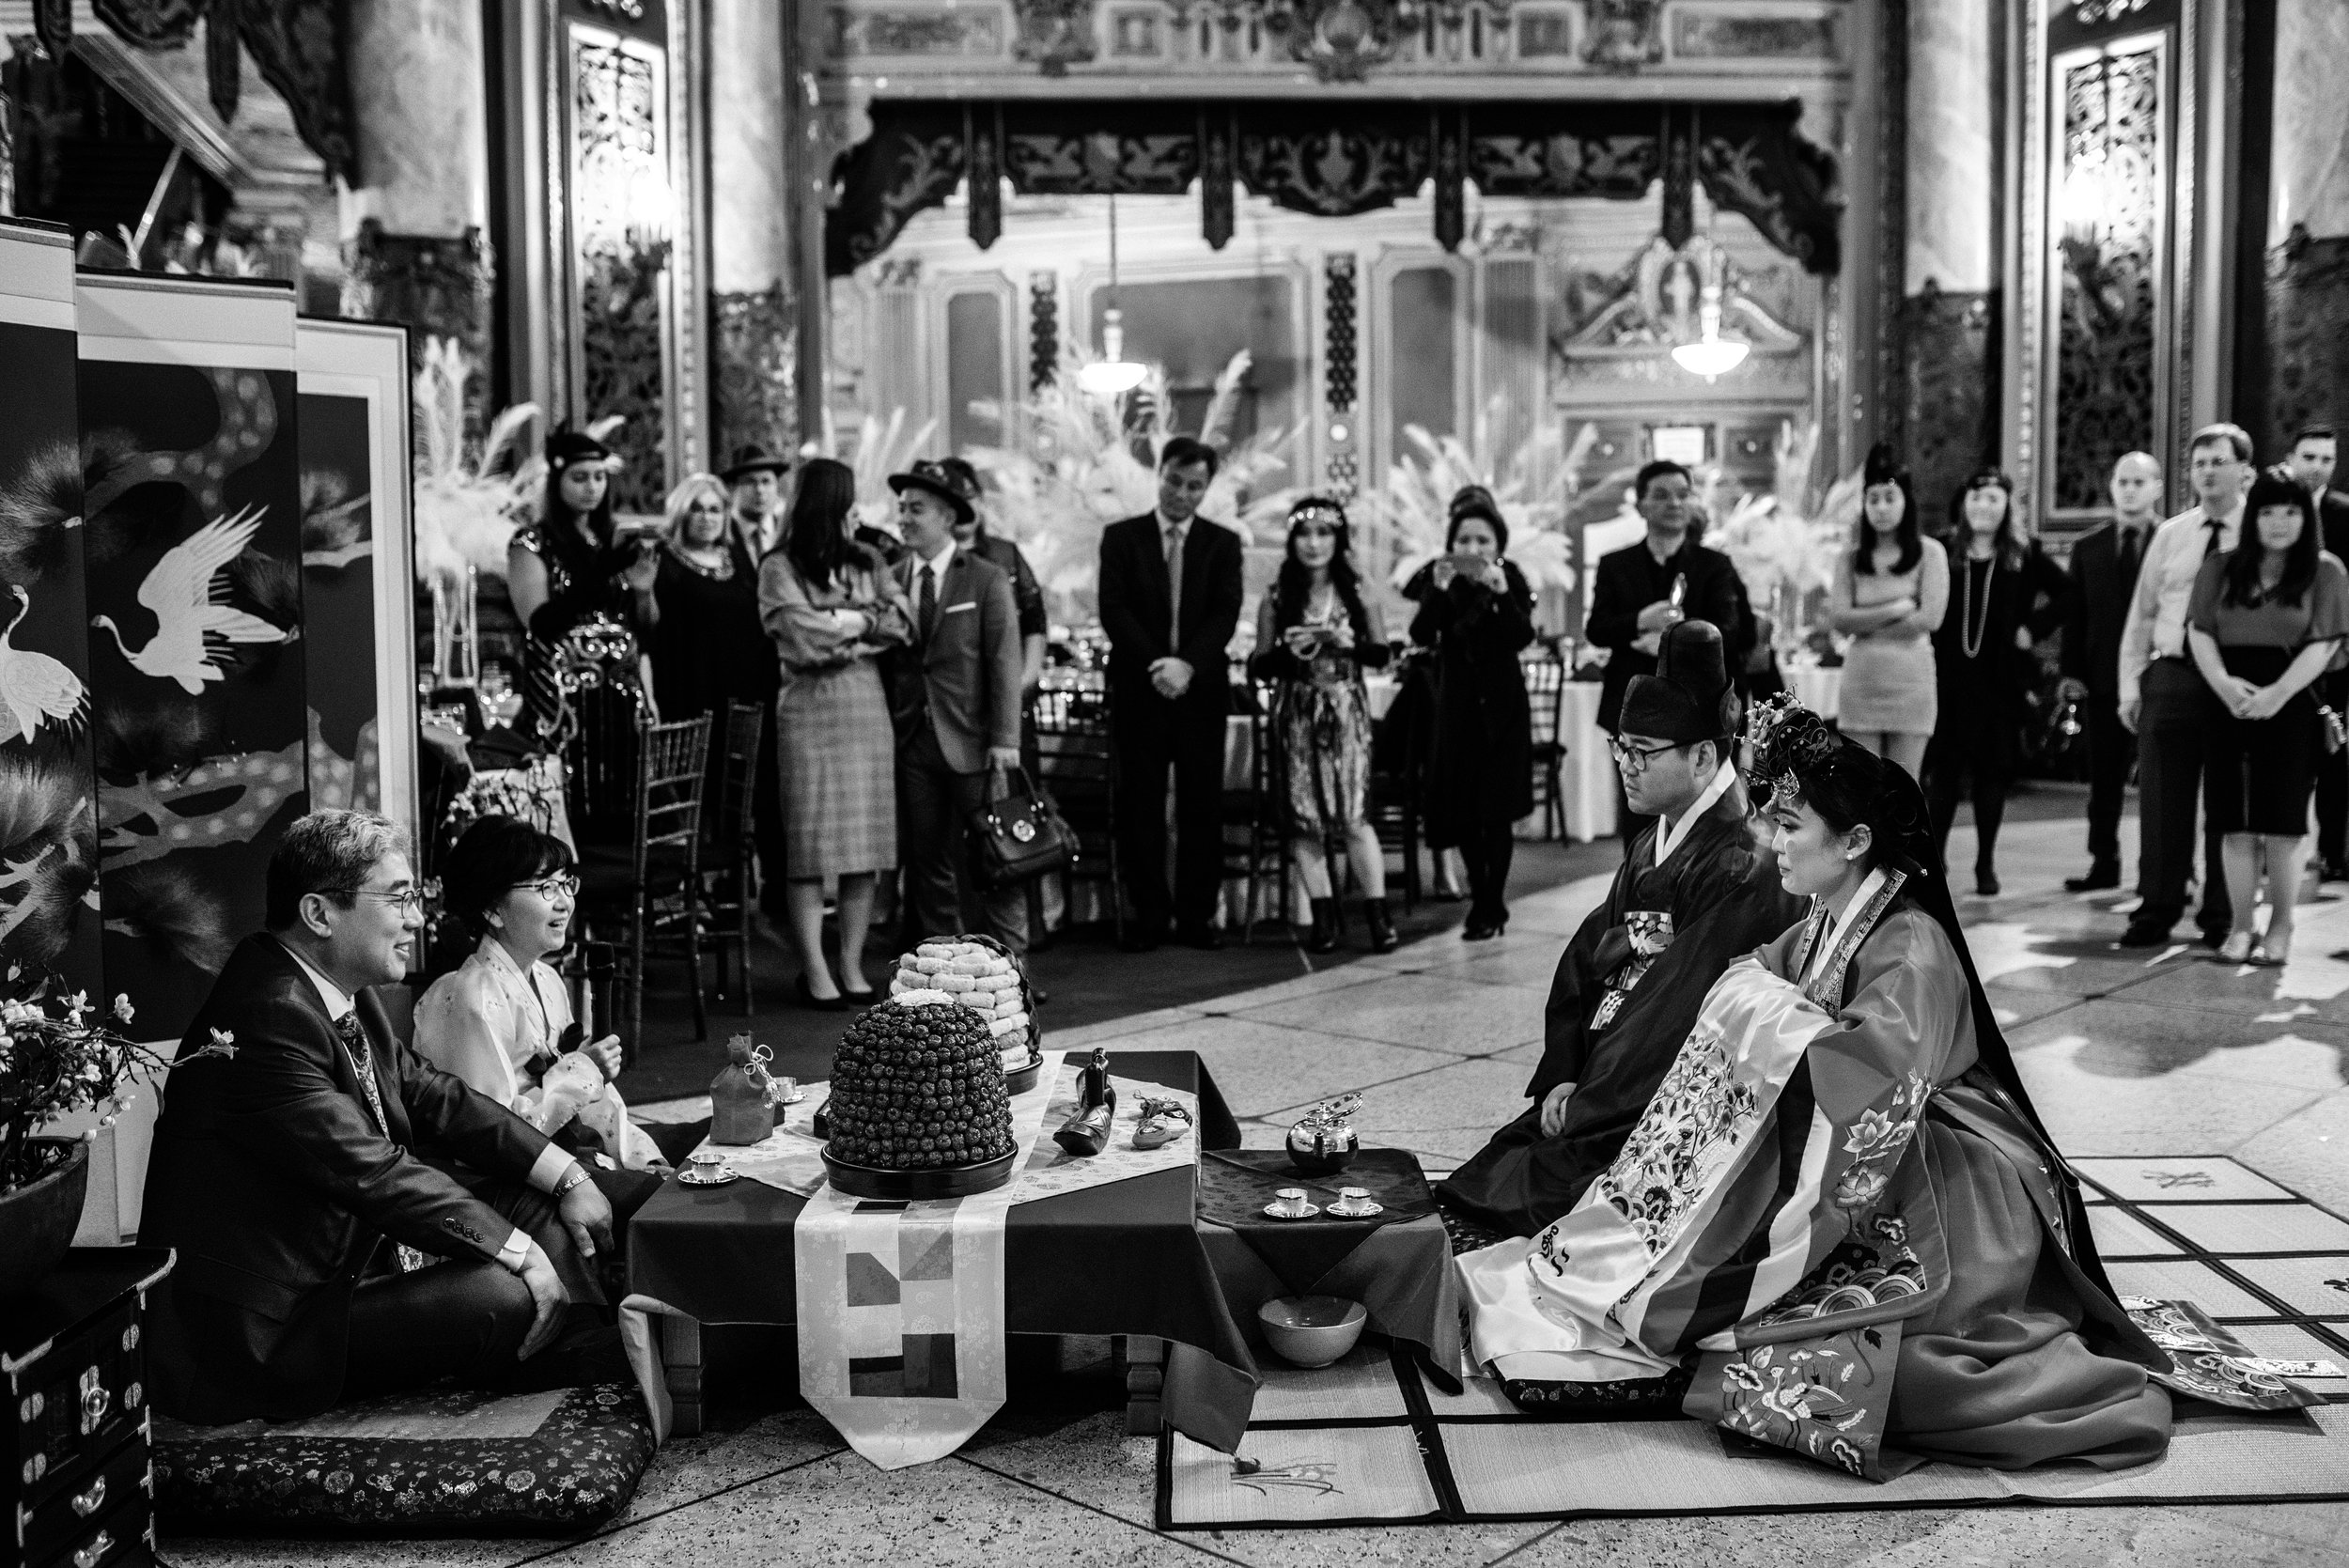 Black and white photo of traditional Korean tea ceremony during sustainable wedding reception of bride and groom celebrating a momentus occasion while wearing native garb